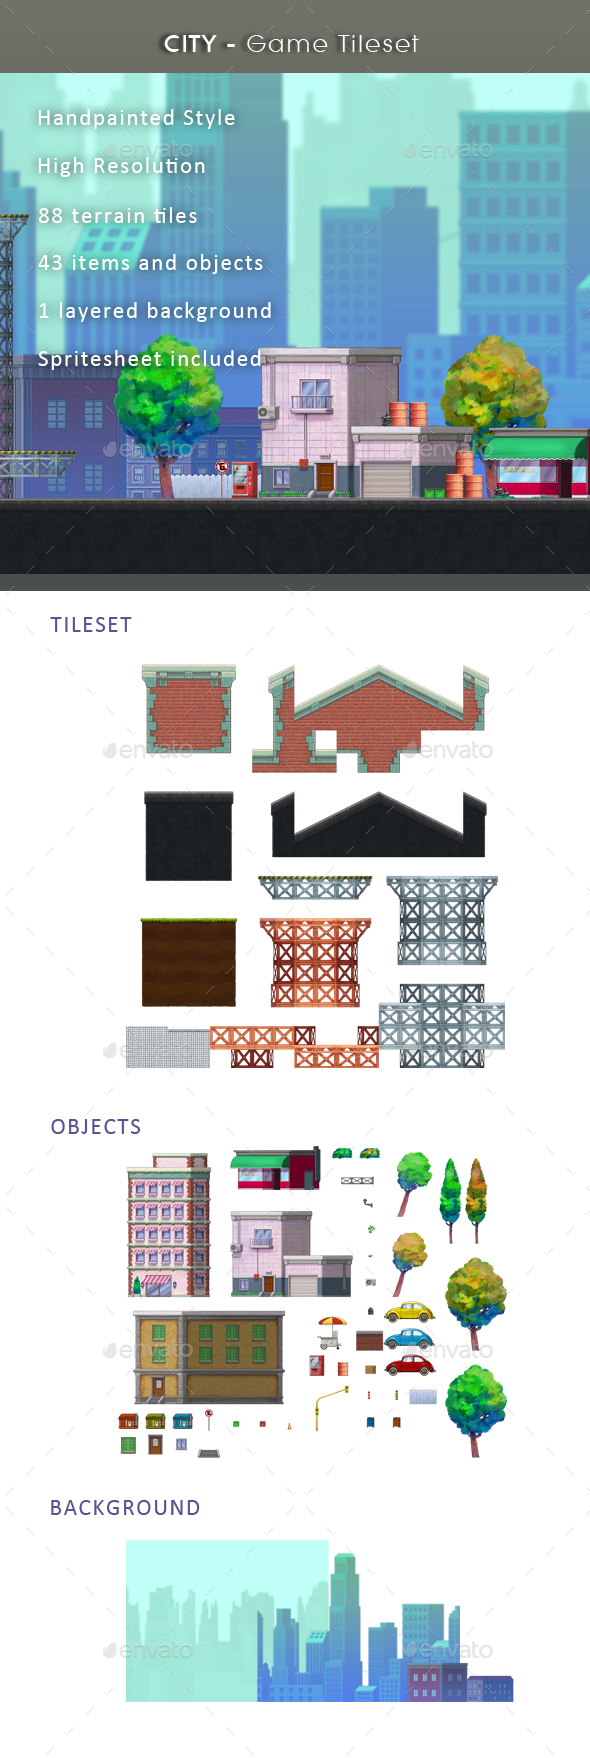 City - Game Tileset - Tilesets Game Assets